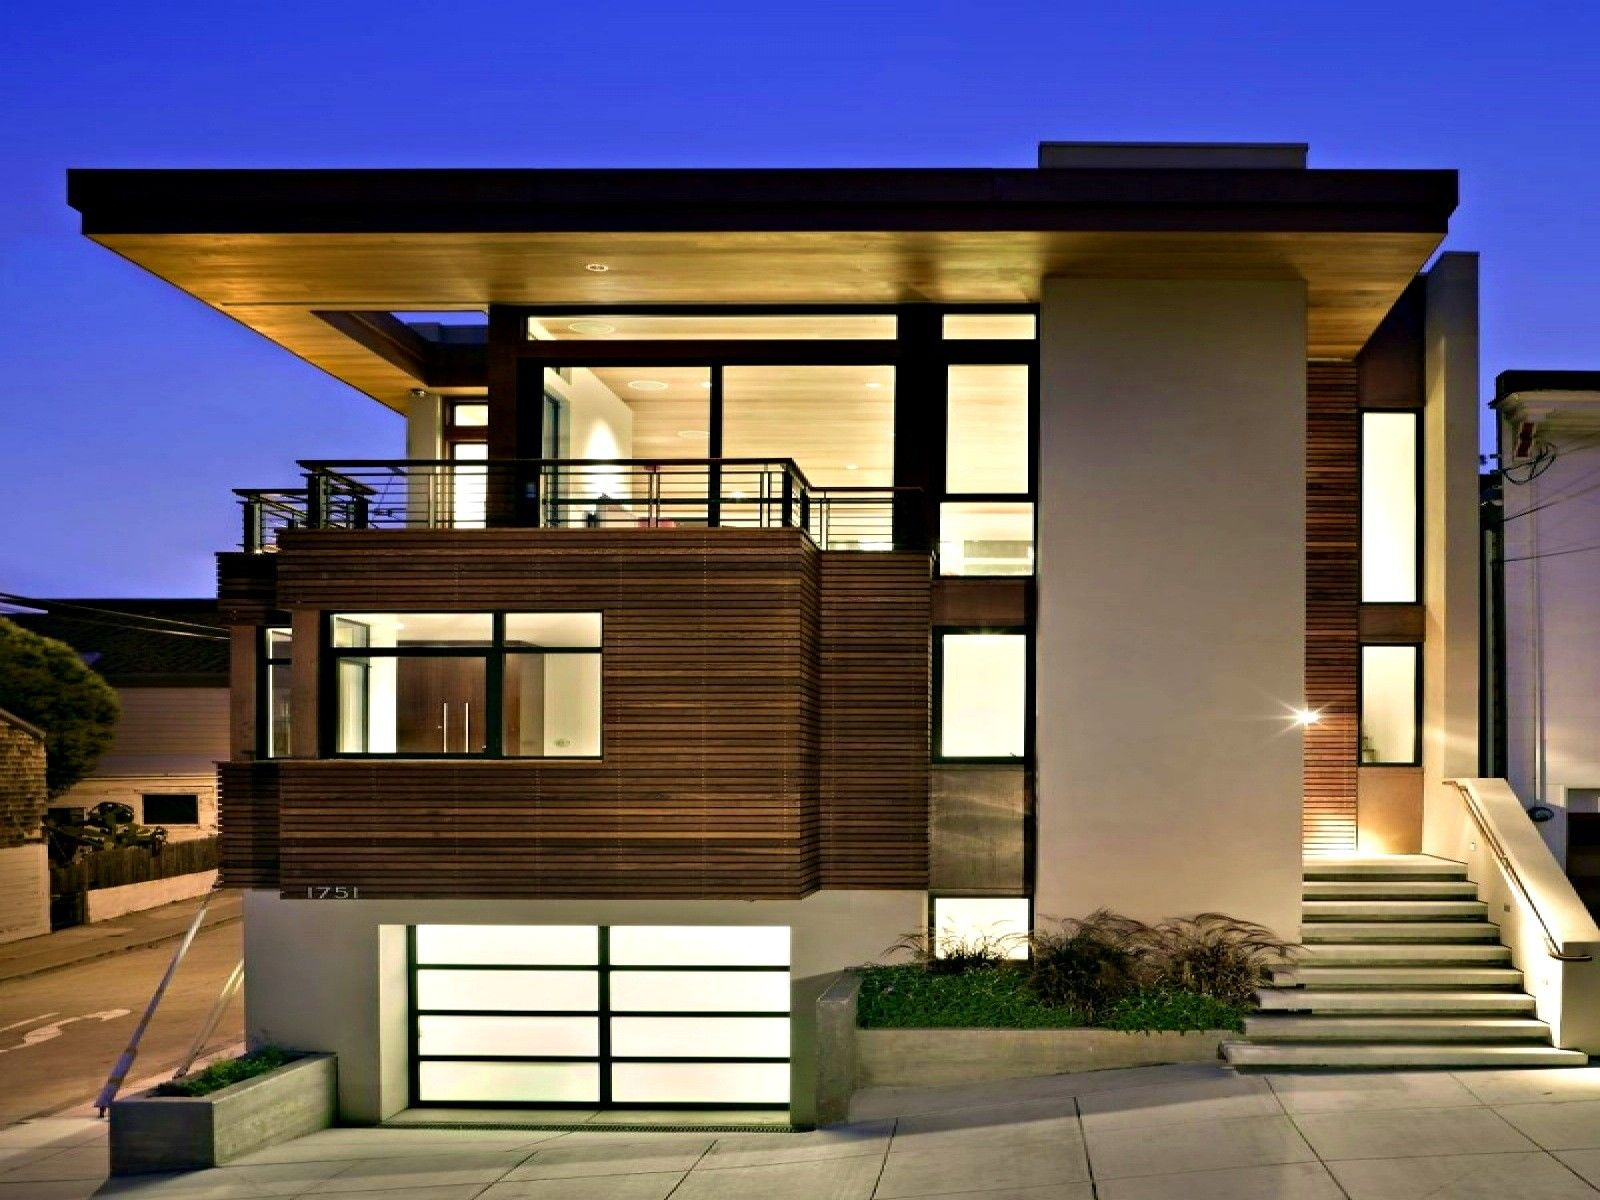 Modern house plans affordable design building designs home llc homes glamorous beach stilts stilt green manufactured